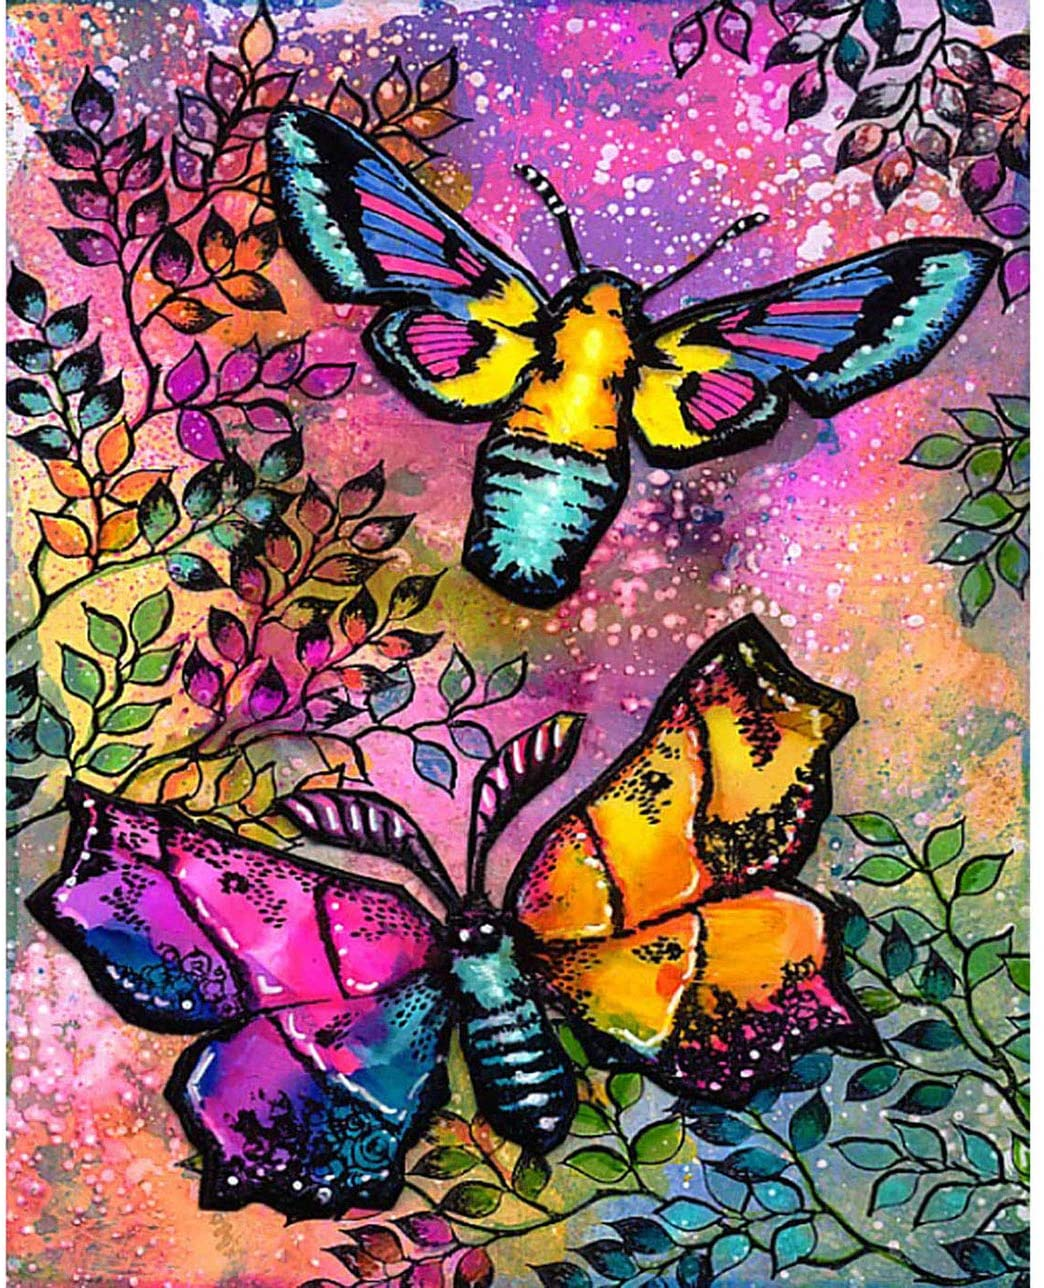 DIY 5D Diamond Painting Round Full Drill Dreamy Beautiful Butterfly, Cross Stitch Arts Paint with Diamonds Arts Craft Canvas for Home Wall Decor 16x20 inch(W9L-123)